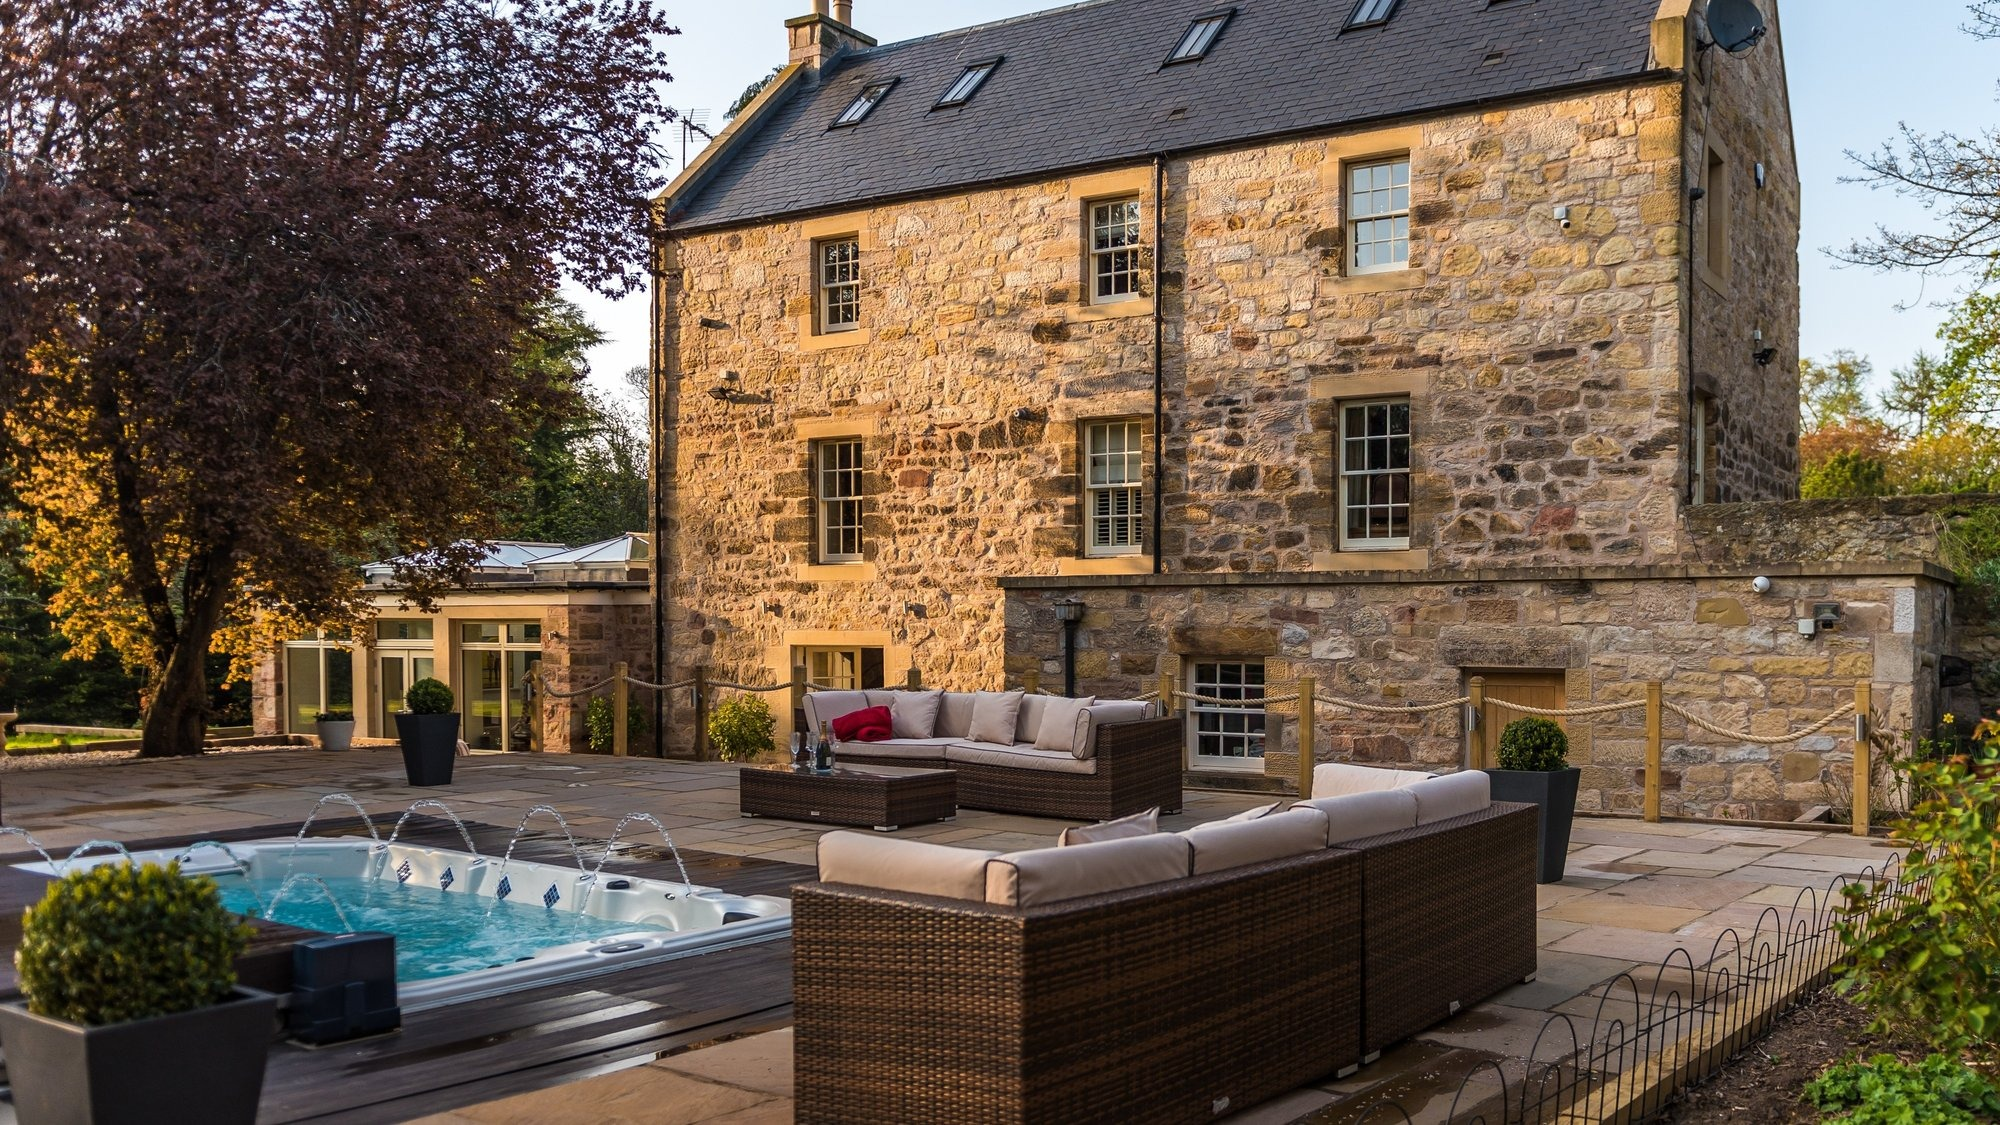 Finer holiday stays across Scotland